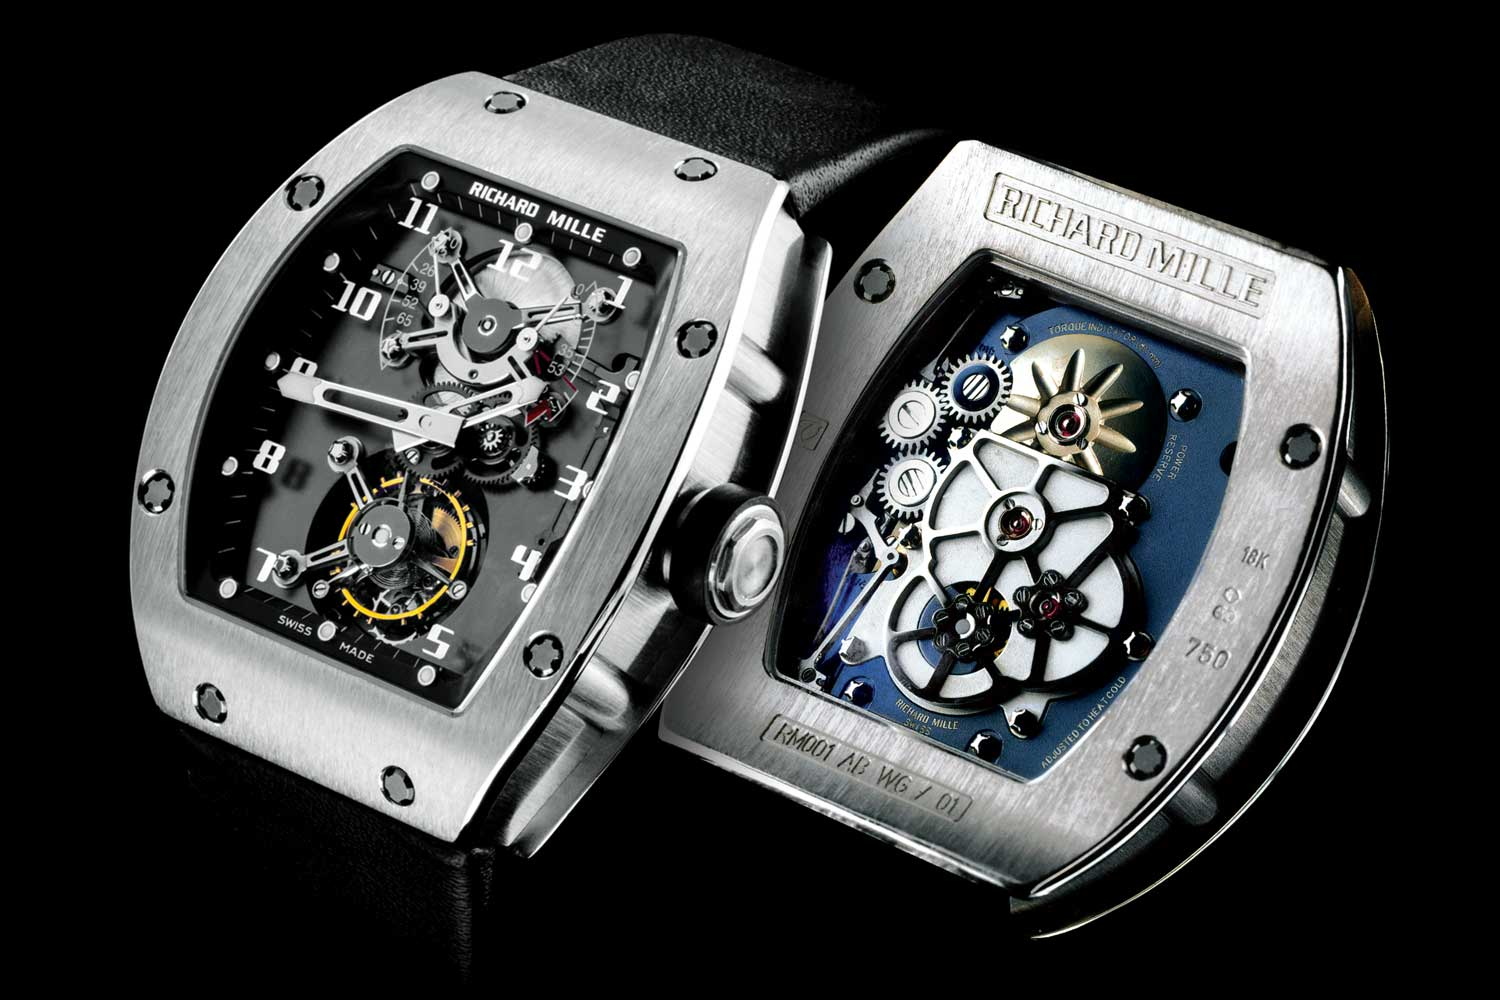 When introduced in 2001, the RM 001 presented a technical and aesthetic approach that was earth shattering in the watchmaking industry